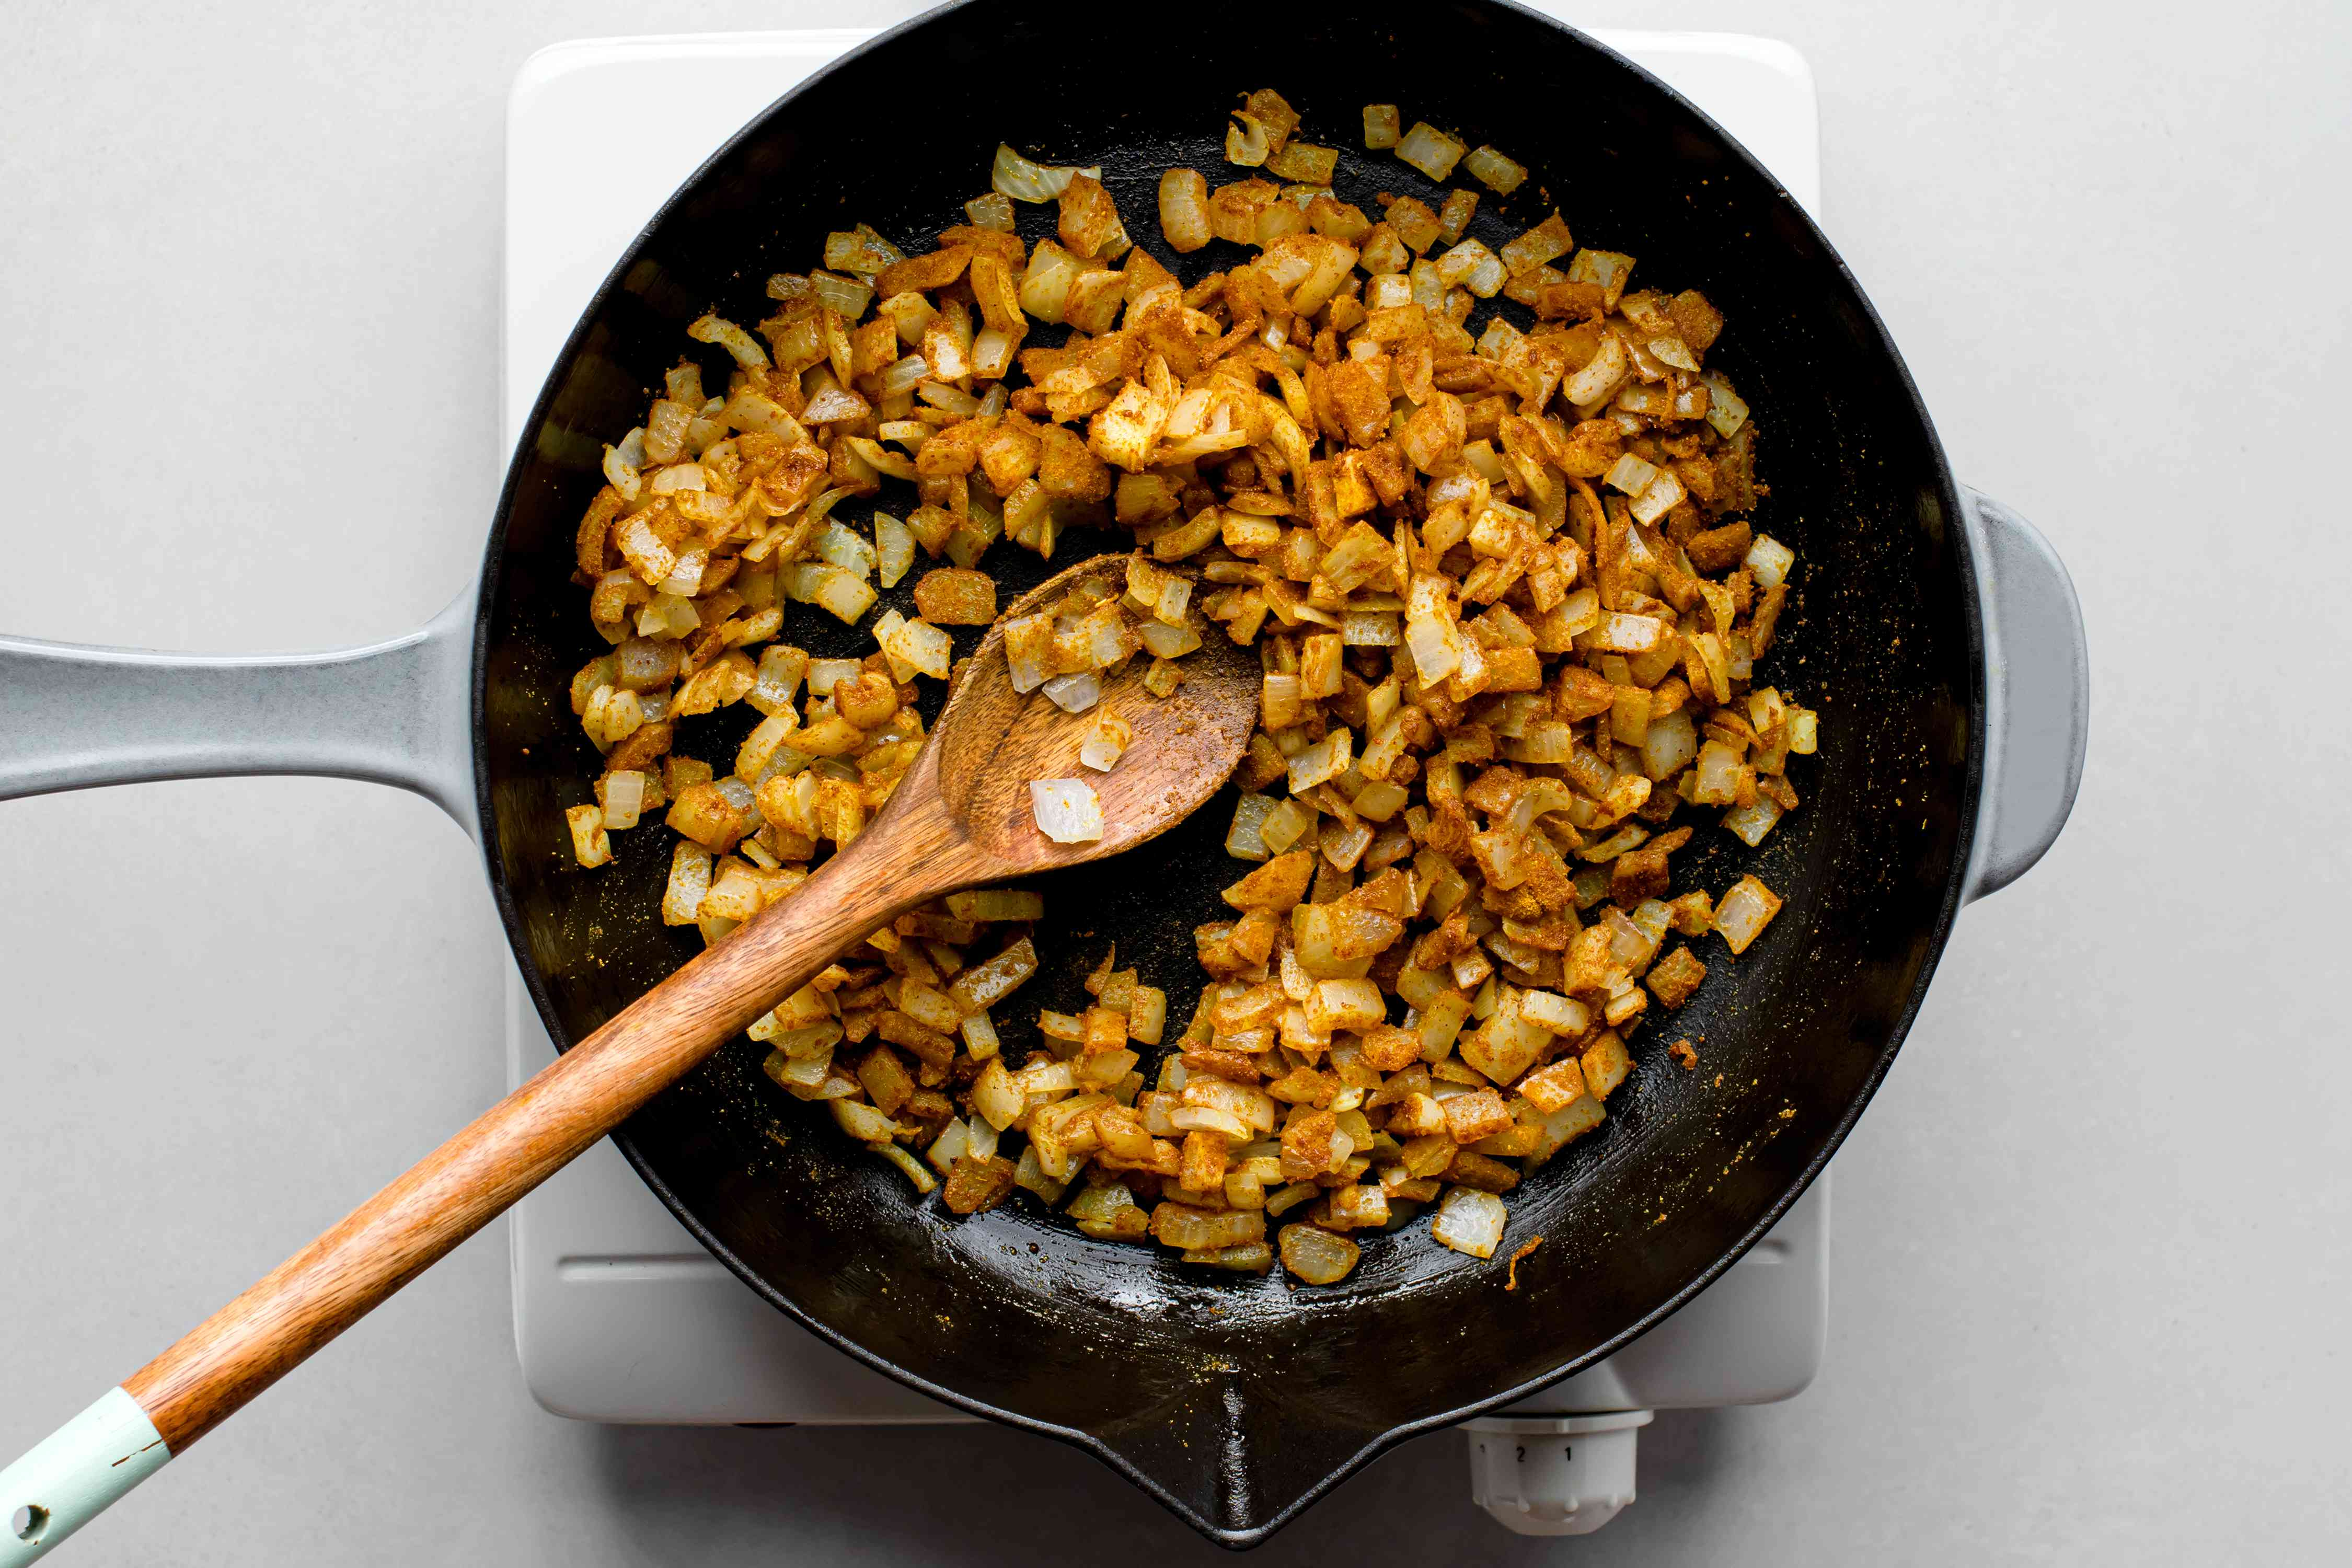 onions cooking with curry powder in a skillet